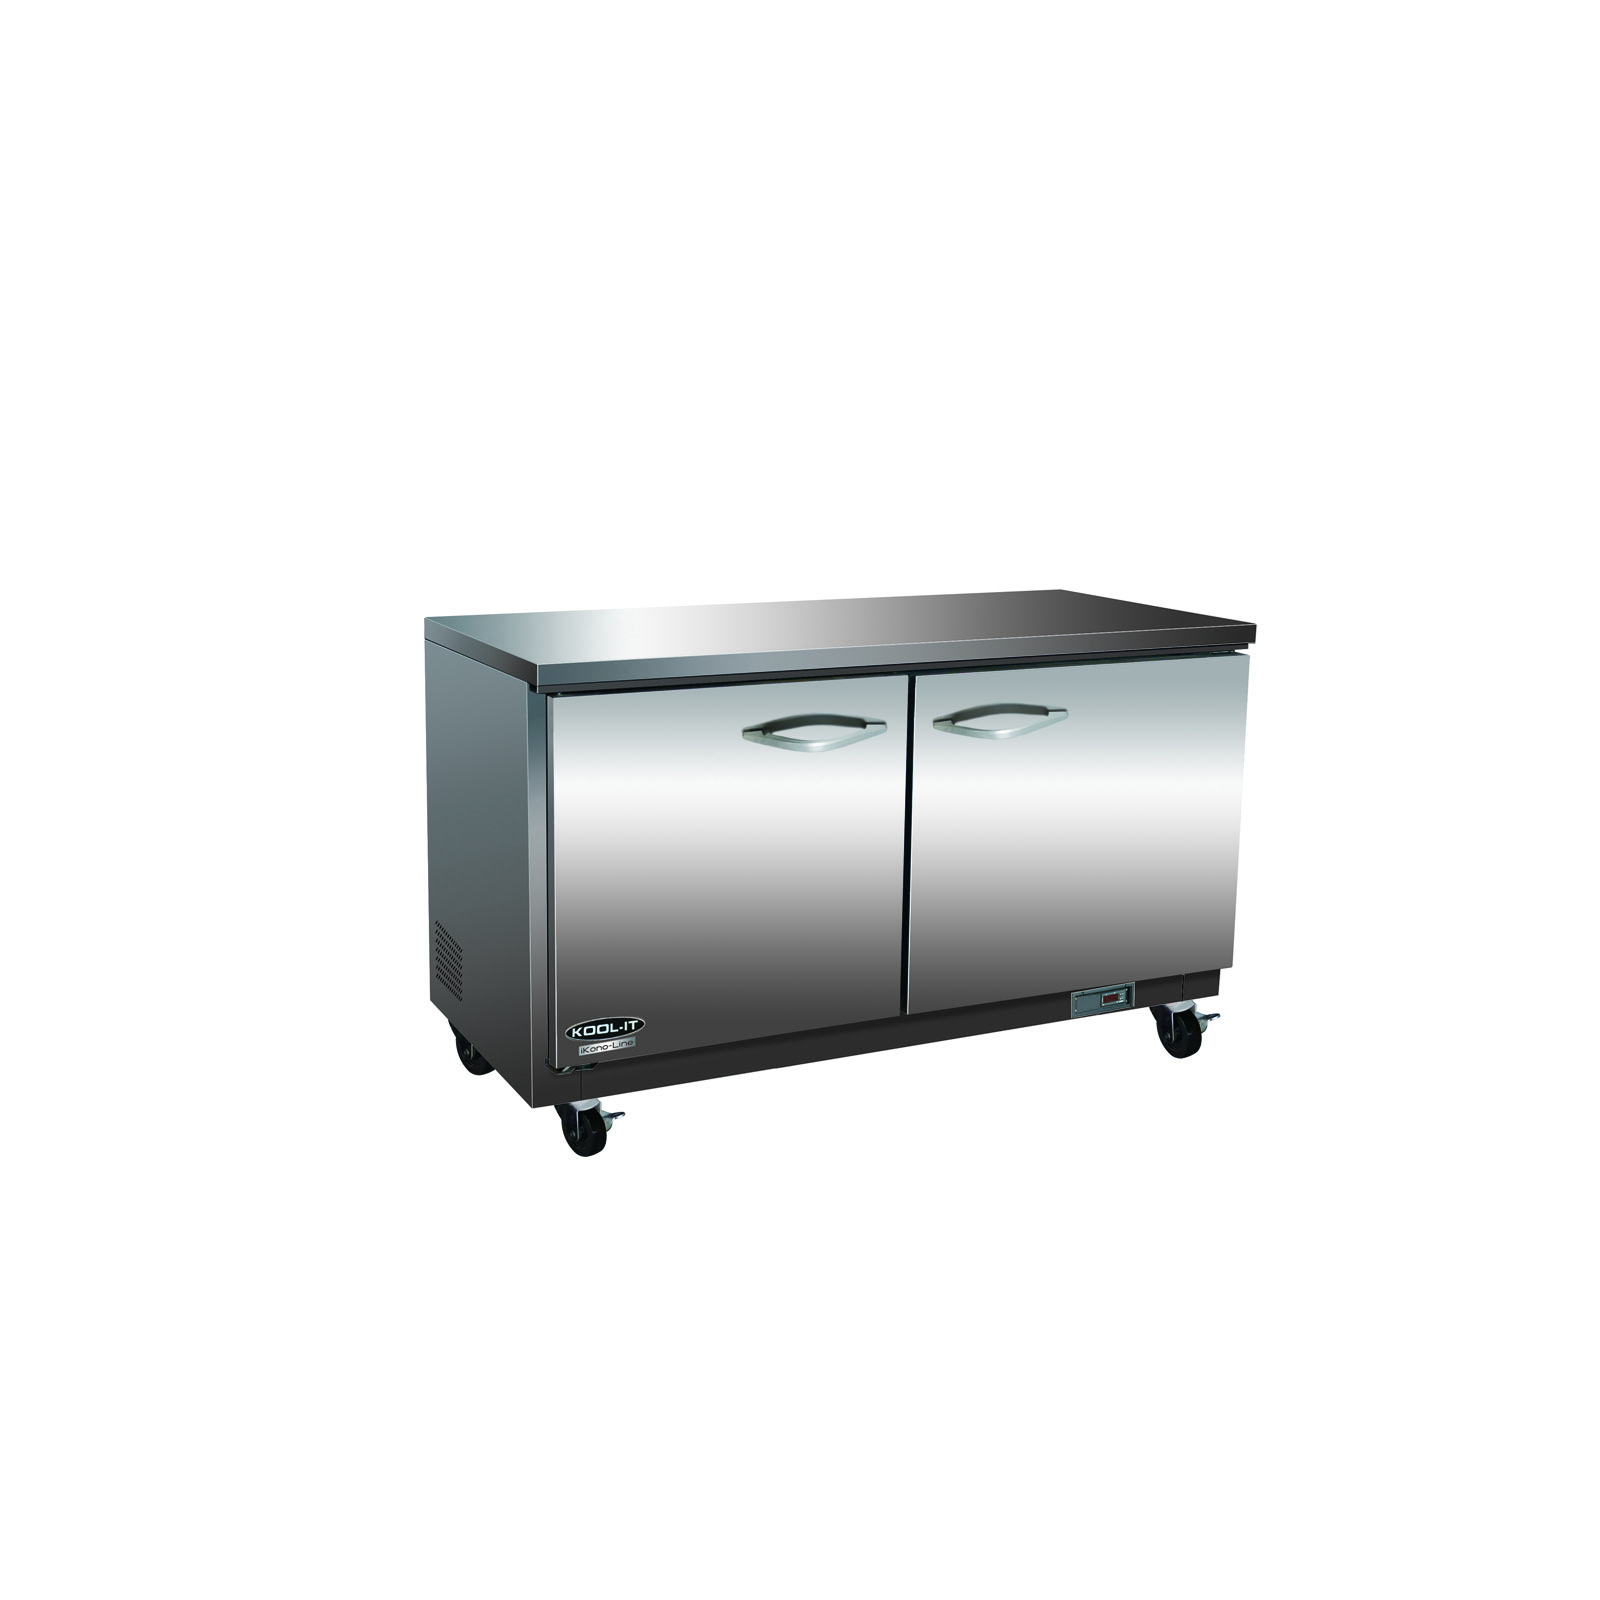 MVP Group LLC IUC61R refrigerator, undercounter, reach-in